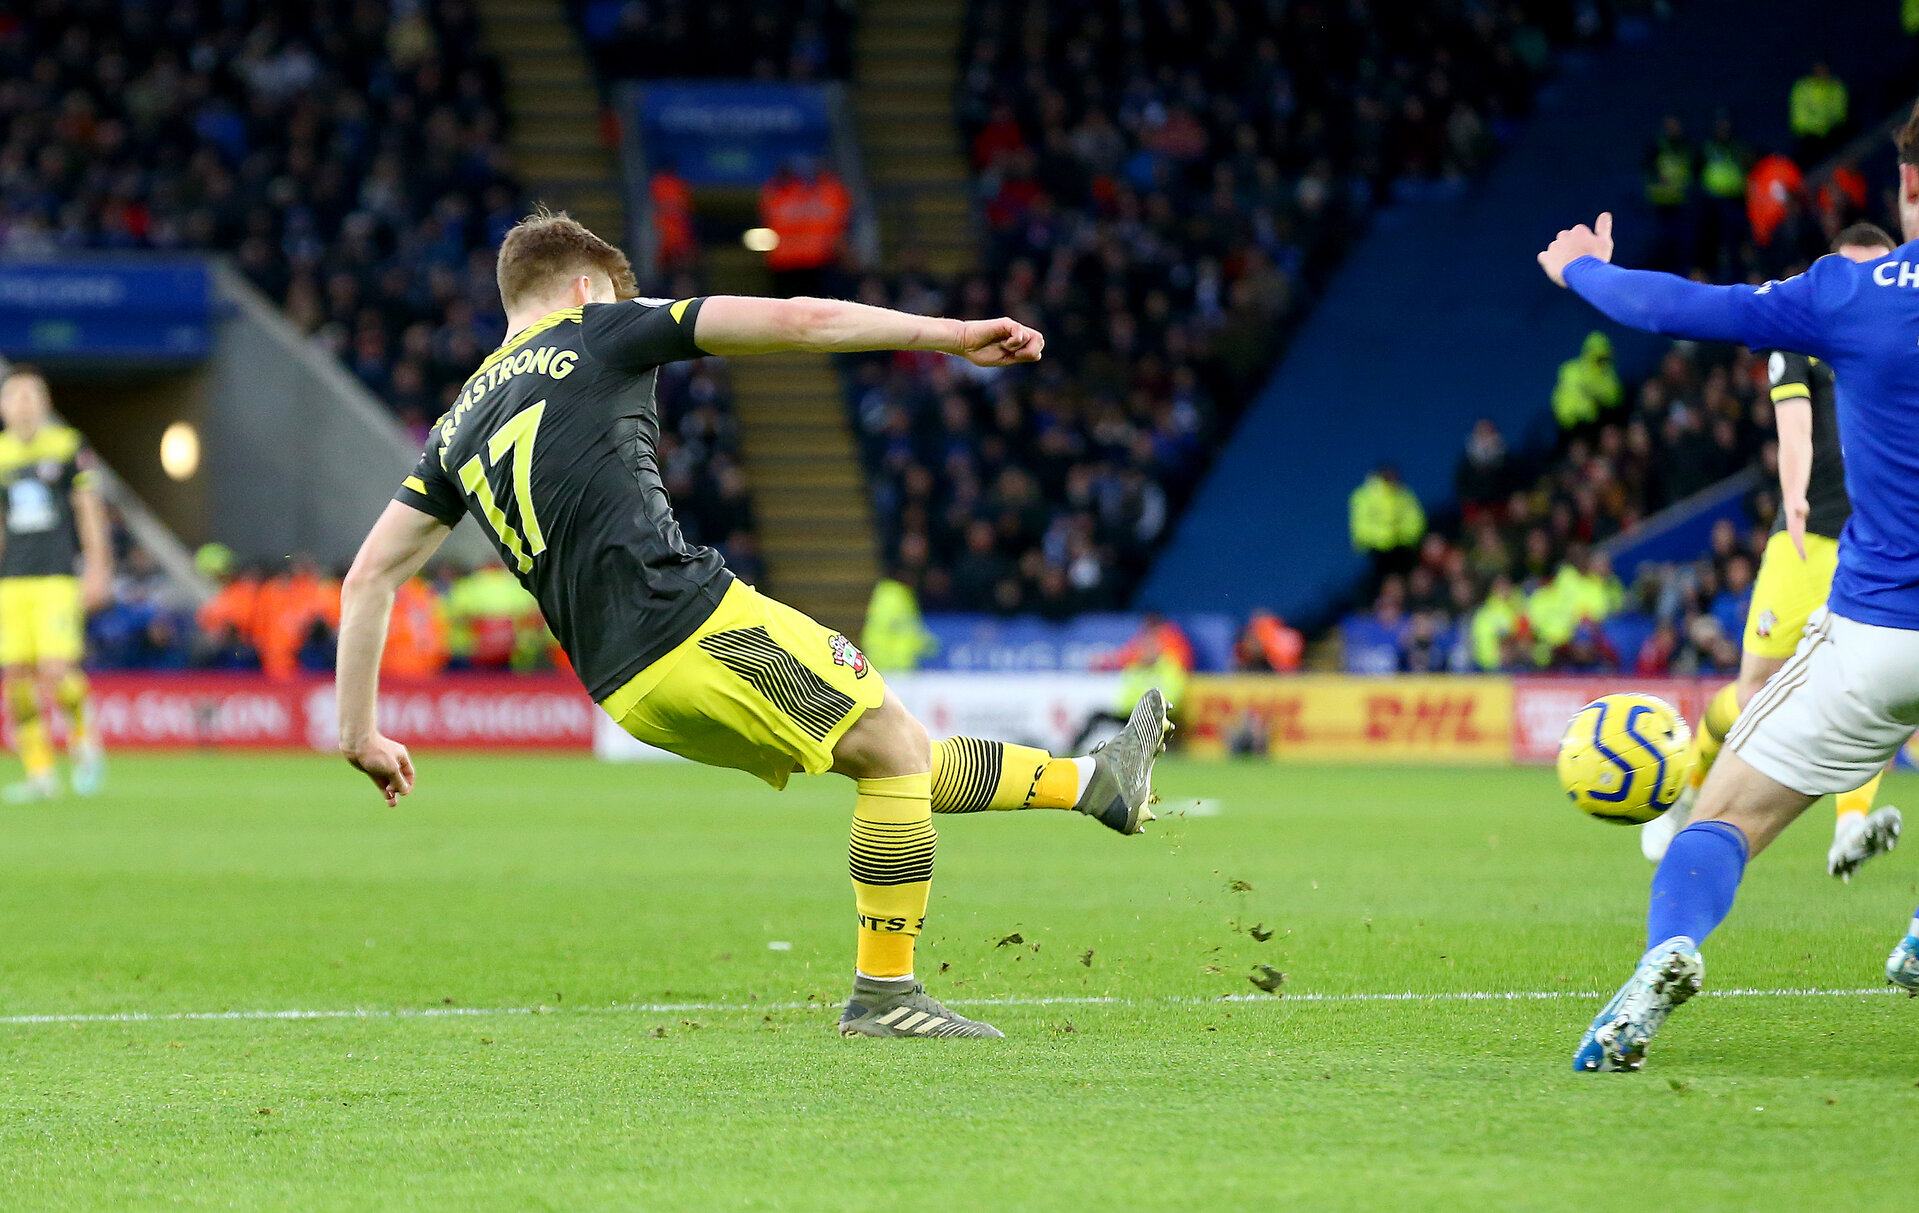 LEICESTER, ENGLAND - JANUARY 11: Stuart Armstrong of Southampton strikes to make it 1-1 during the Premier League match between Leicester City and Southampton FC at The King Power Stadium on January 11, 2020 in Leicester, United Kingdom. (Photo by Matt Watson/Southampton FC via Getty Images)